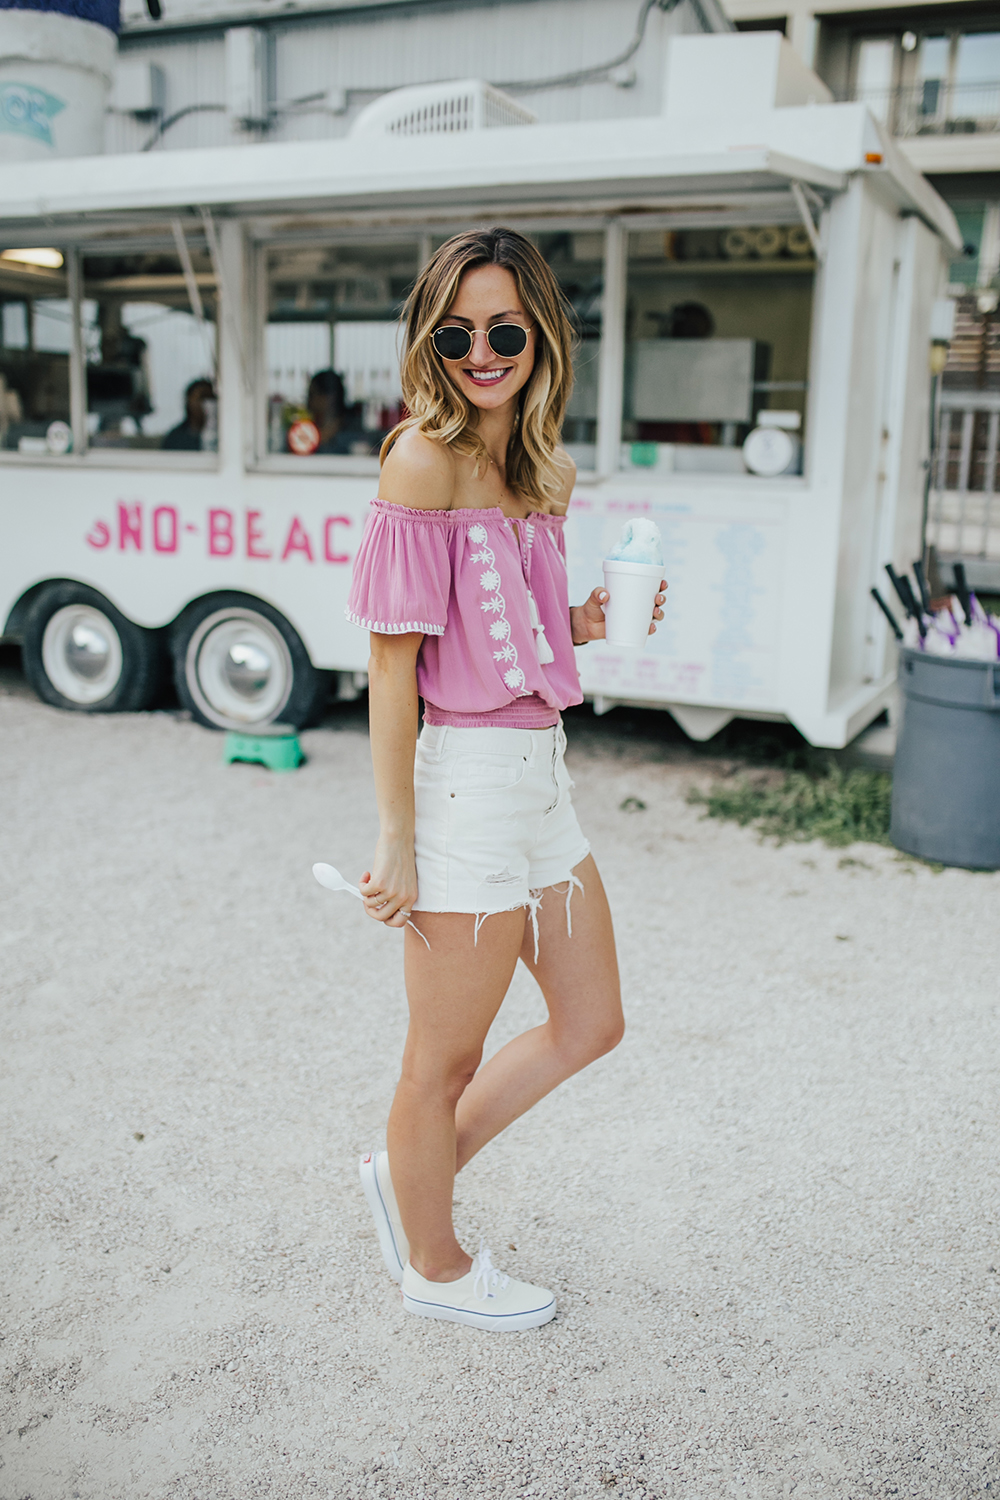 livvyland-blog-olivia-watson-austin-texas-fashion-blogger-pacsun-mom-shorts-off-white-vans-sneakers-sno-beach-snow-cone-7